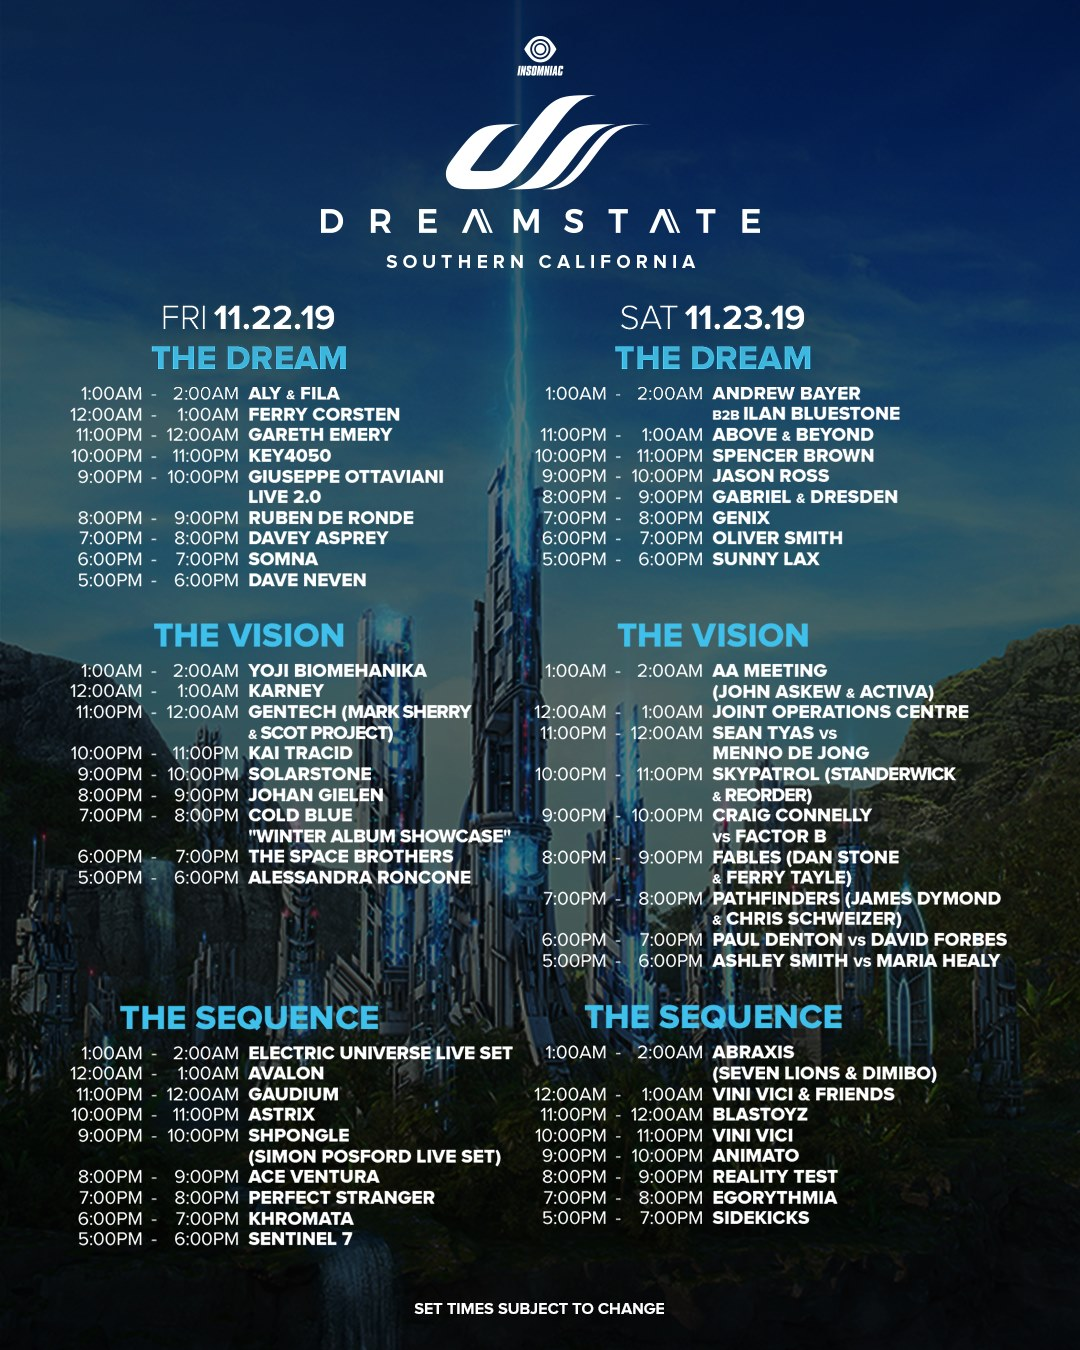 Dreamstate SoCal 2019 Set Times